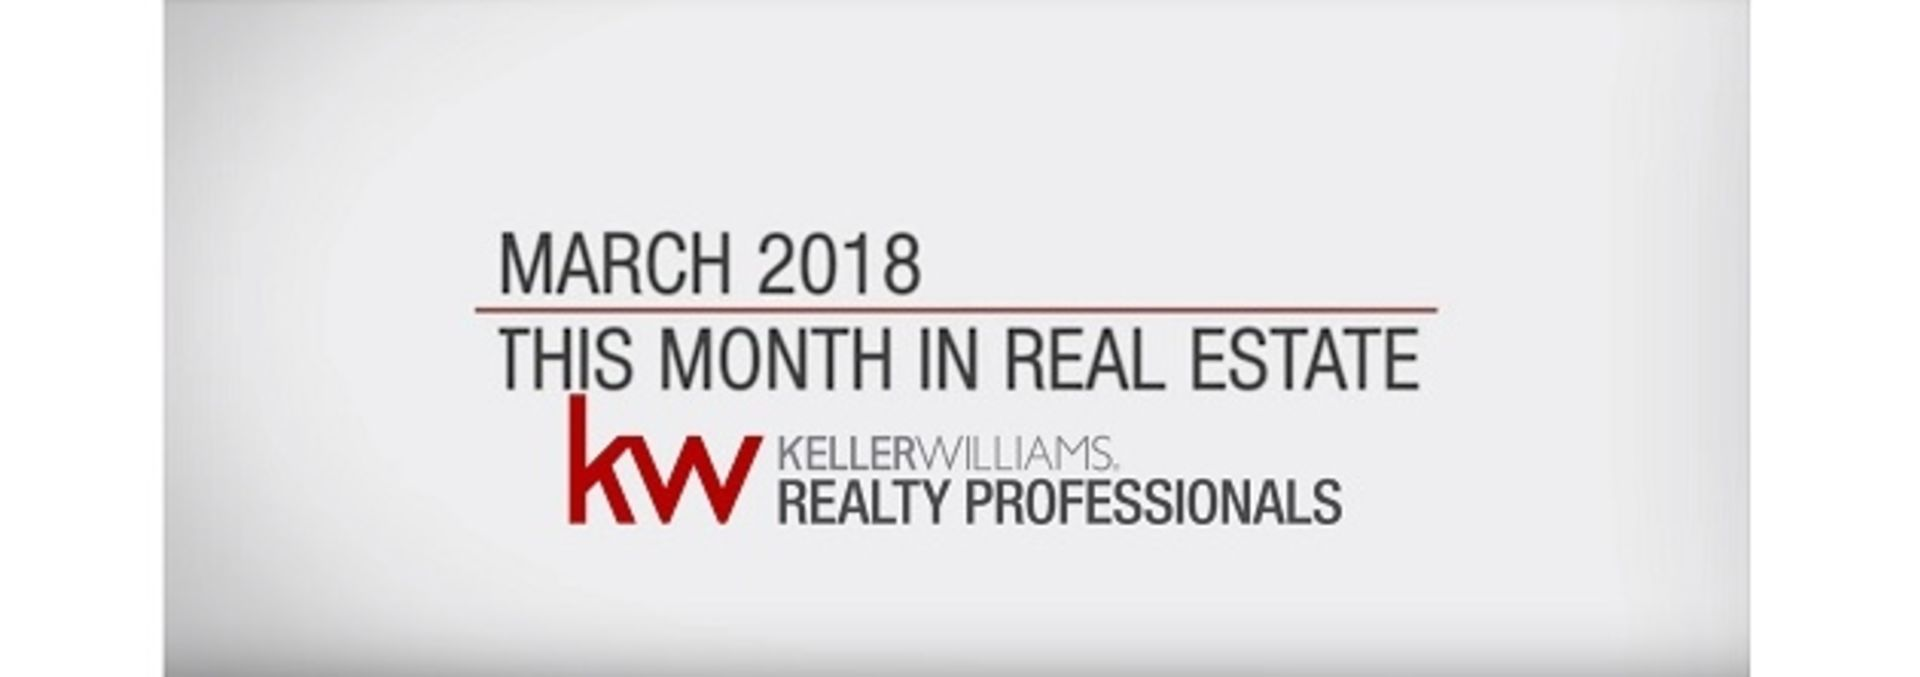 This Month In Real Estate: March 2018